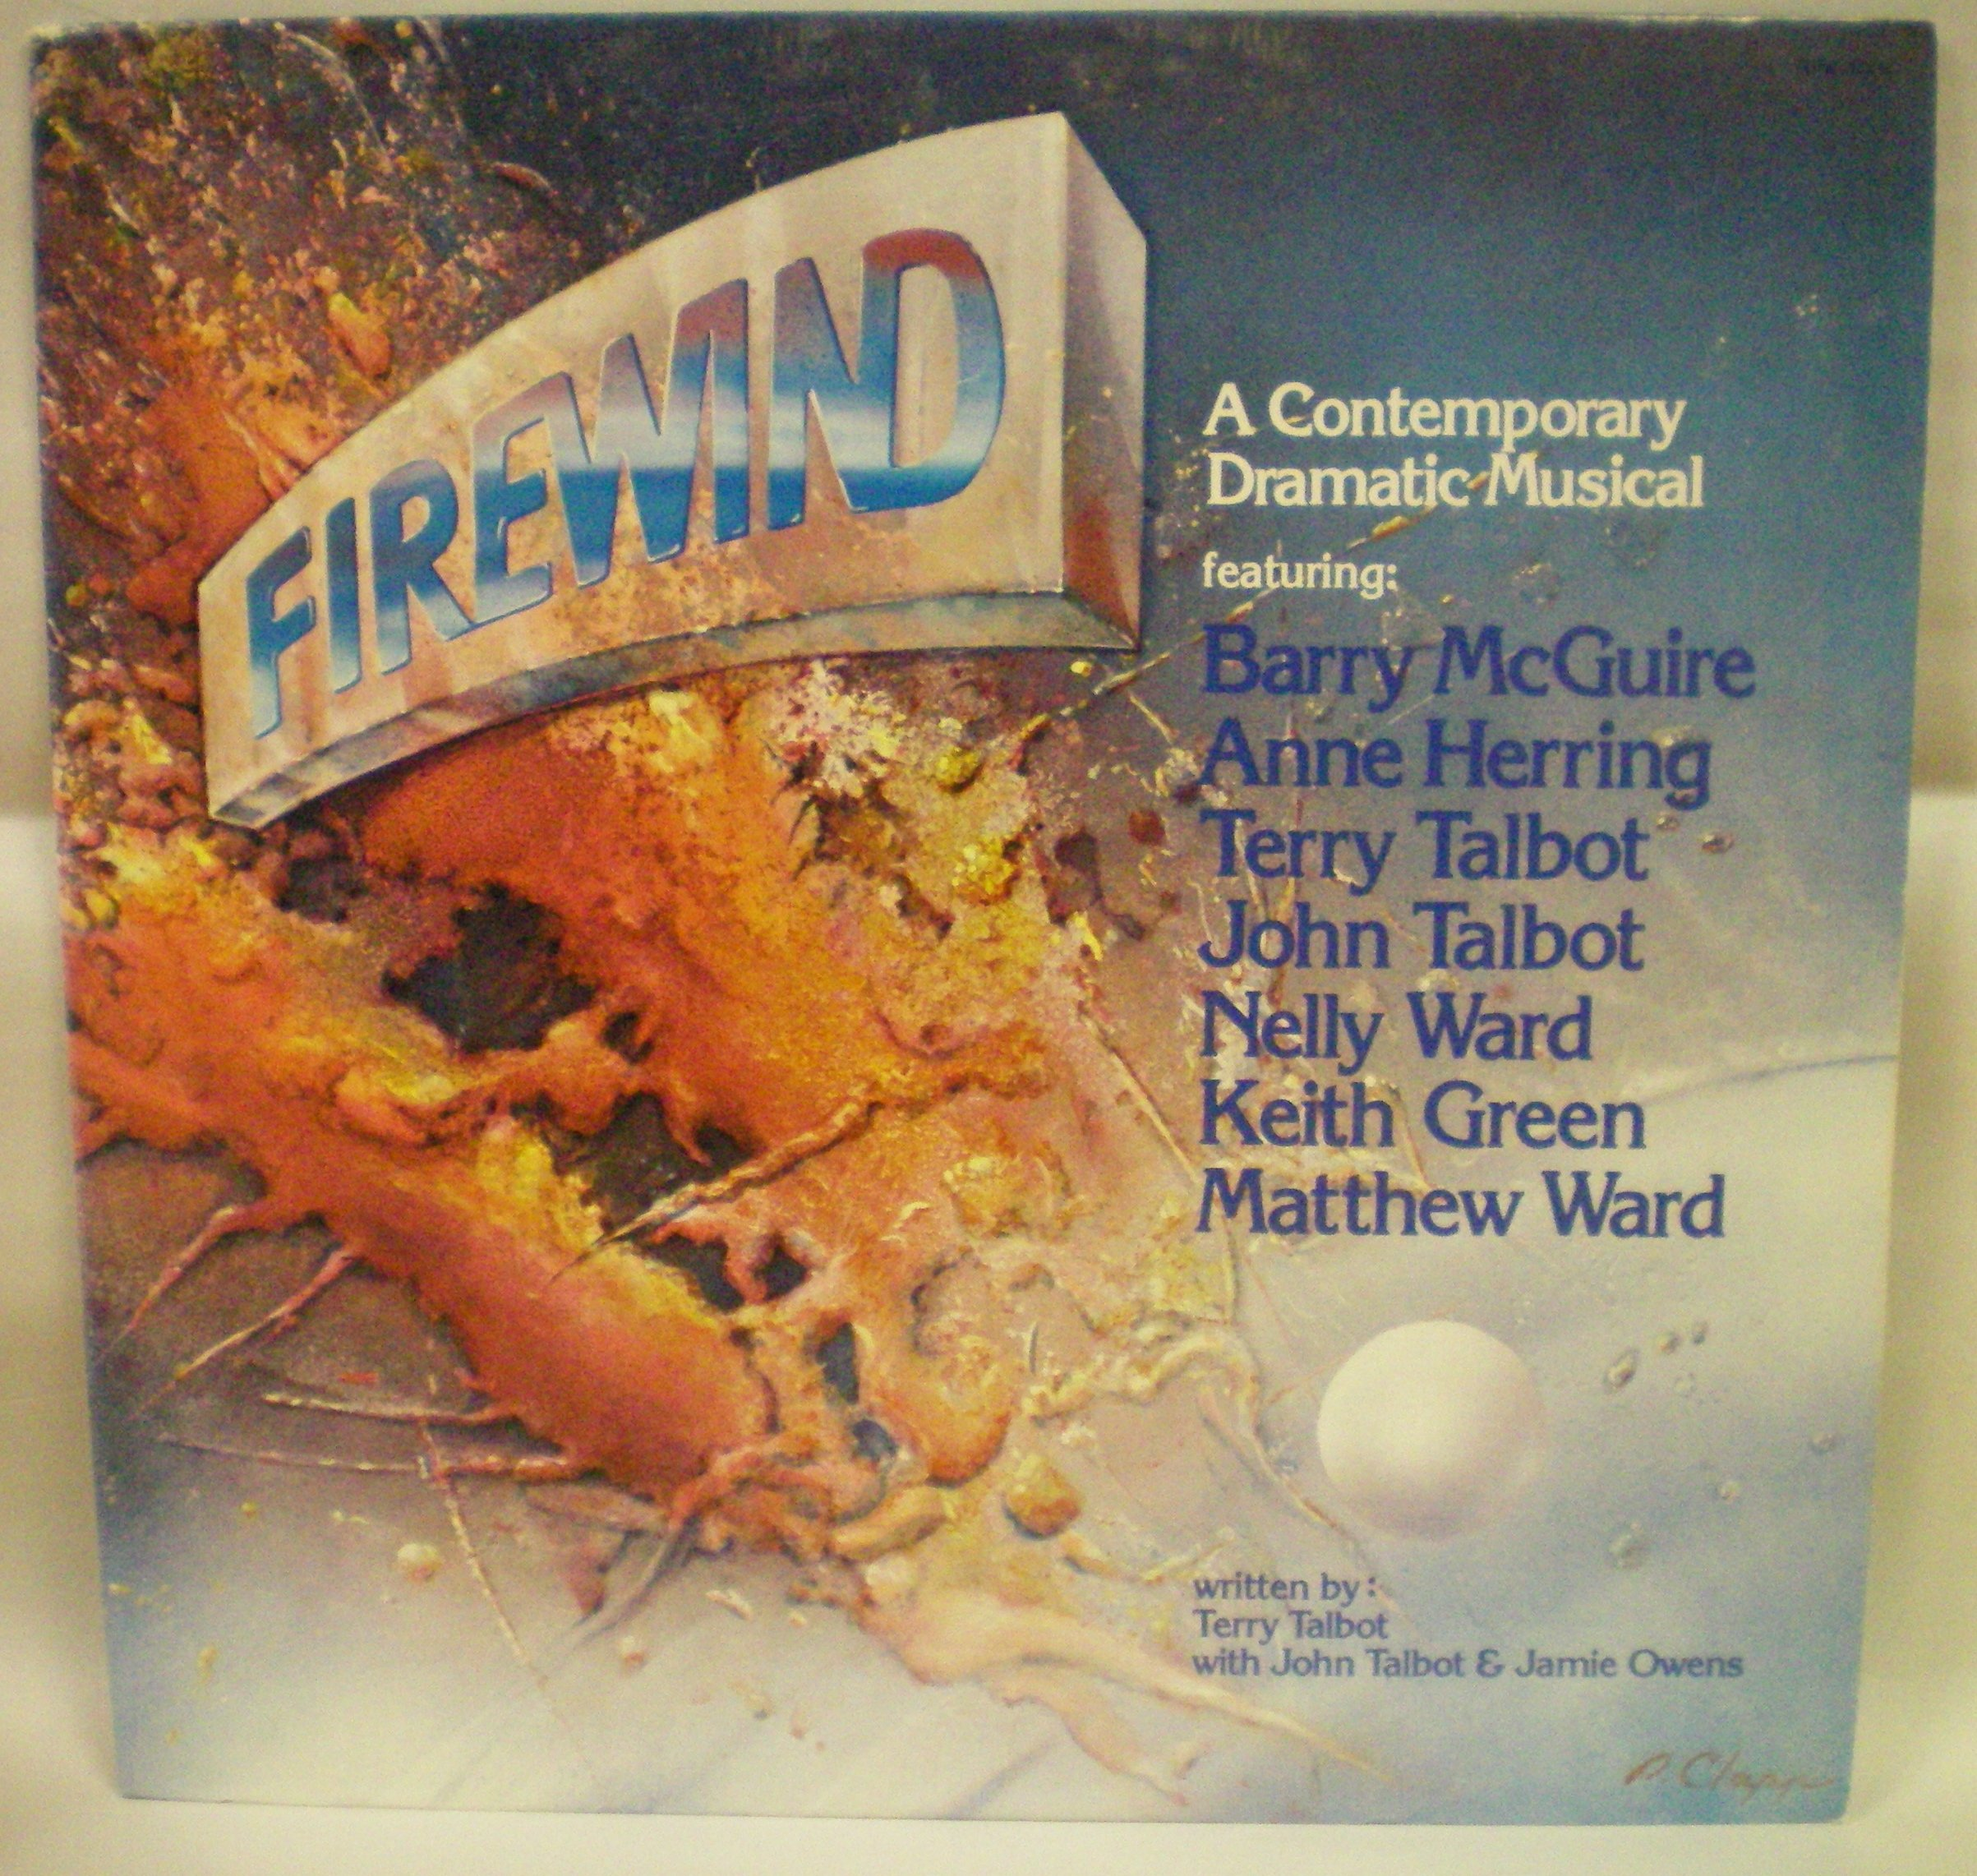 Firewind: A Dramatic Musical written by Terry Talbot with John Talbot and Jamie Owens